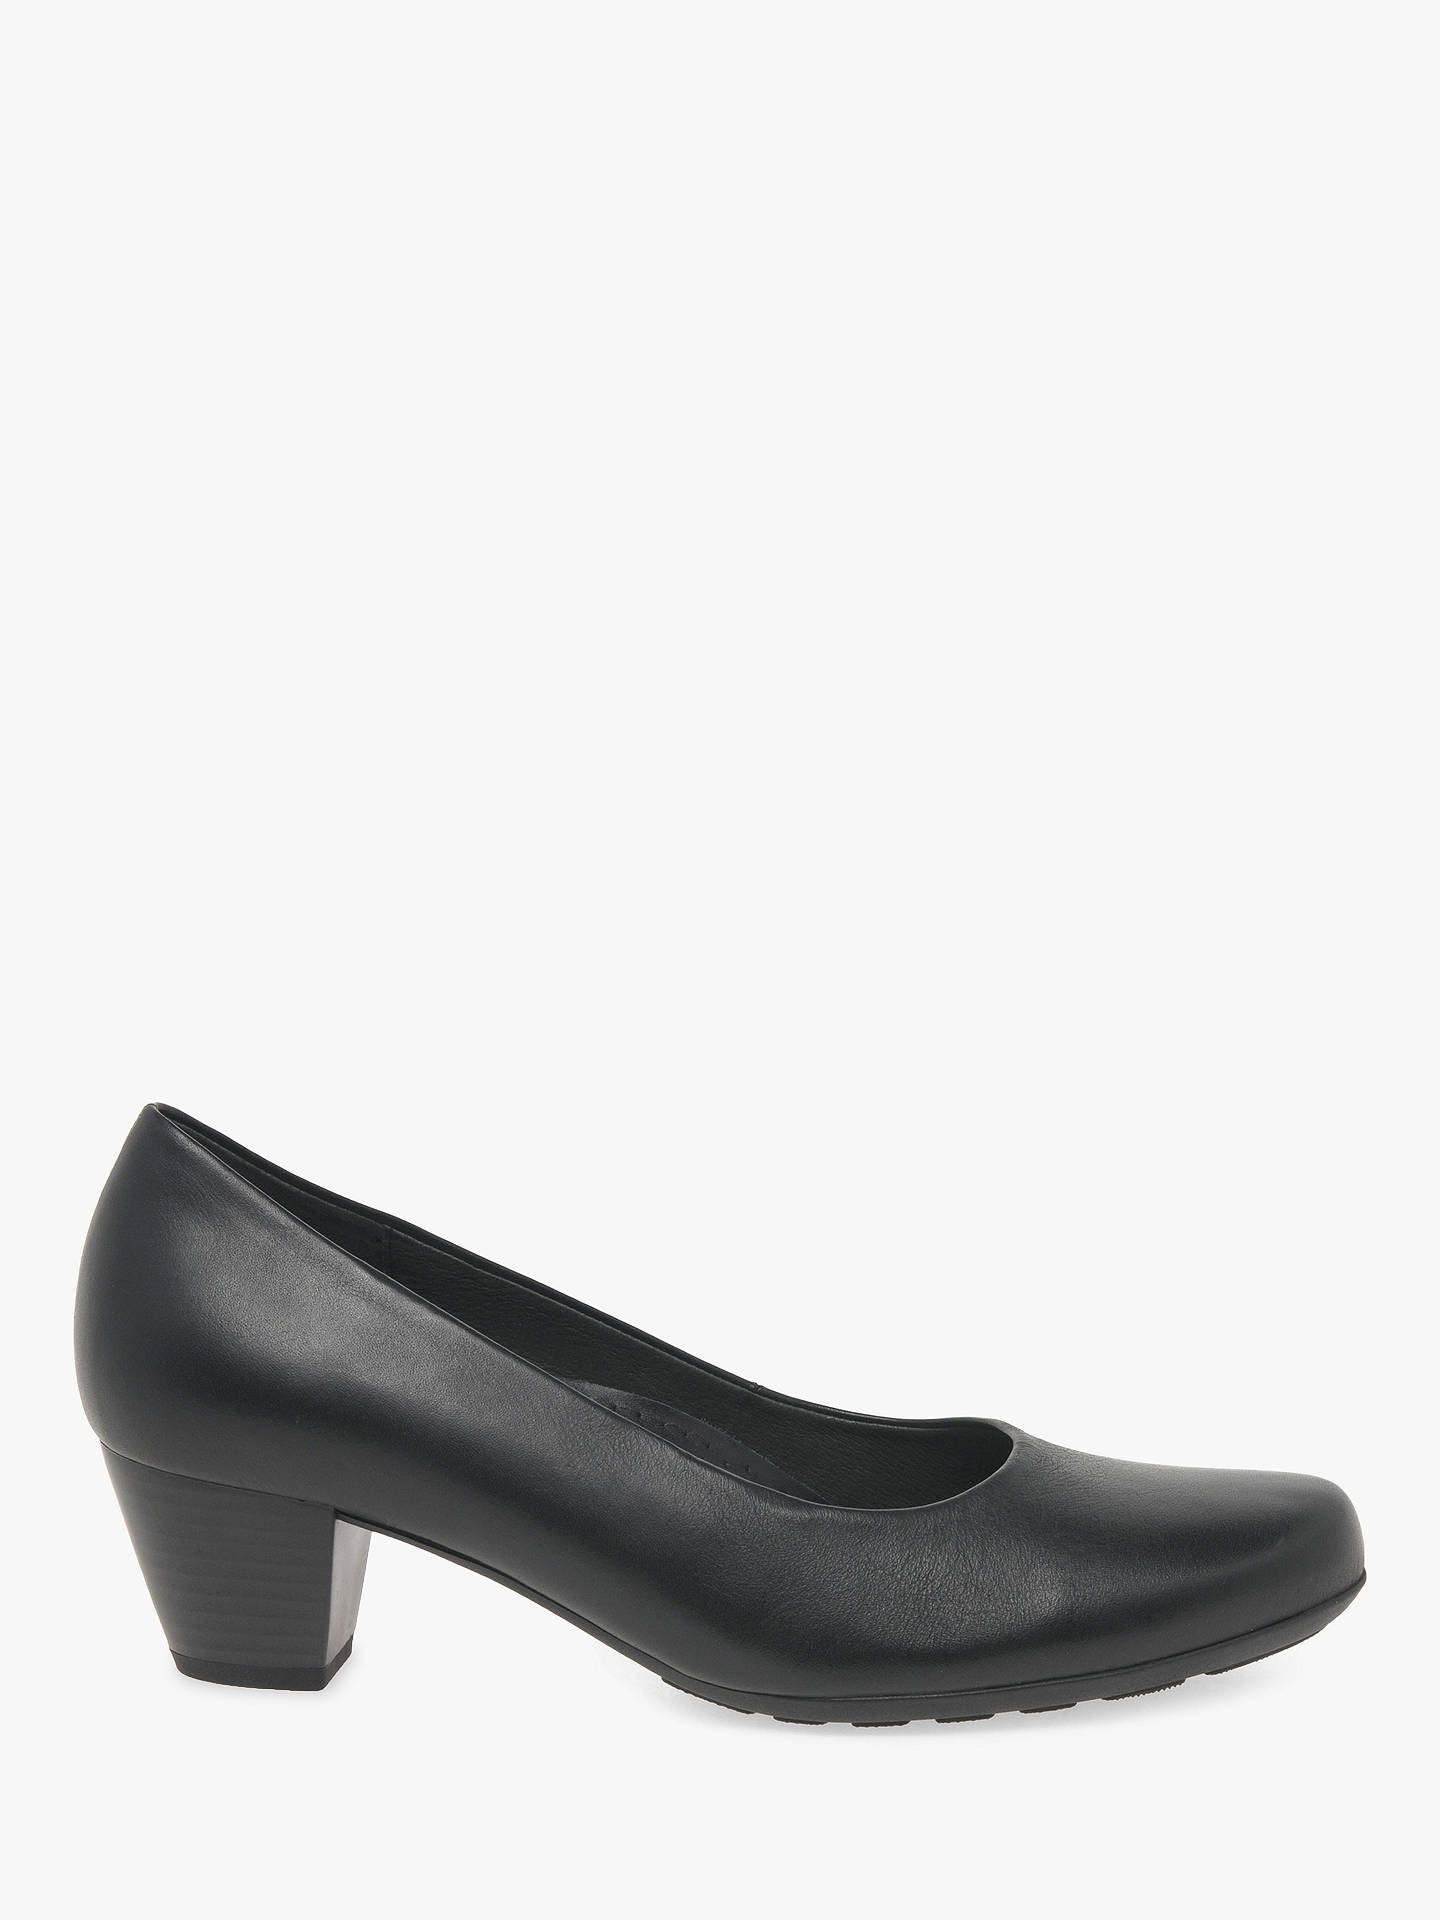 dbba40f409ca6 Buy Gabor Brambling Wide Fit Leather Court Shoes, Black, 4 Online at  johnlewis.